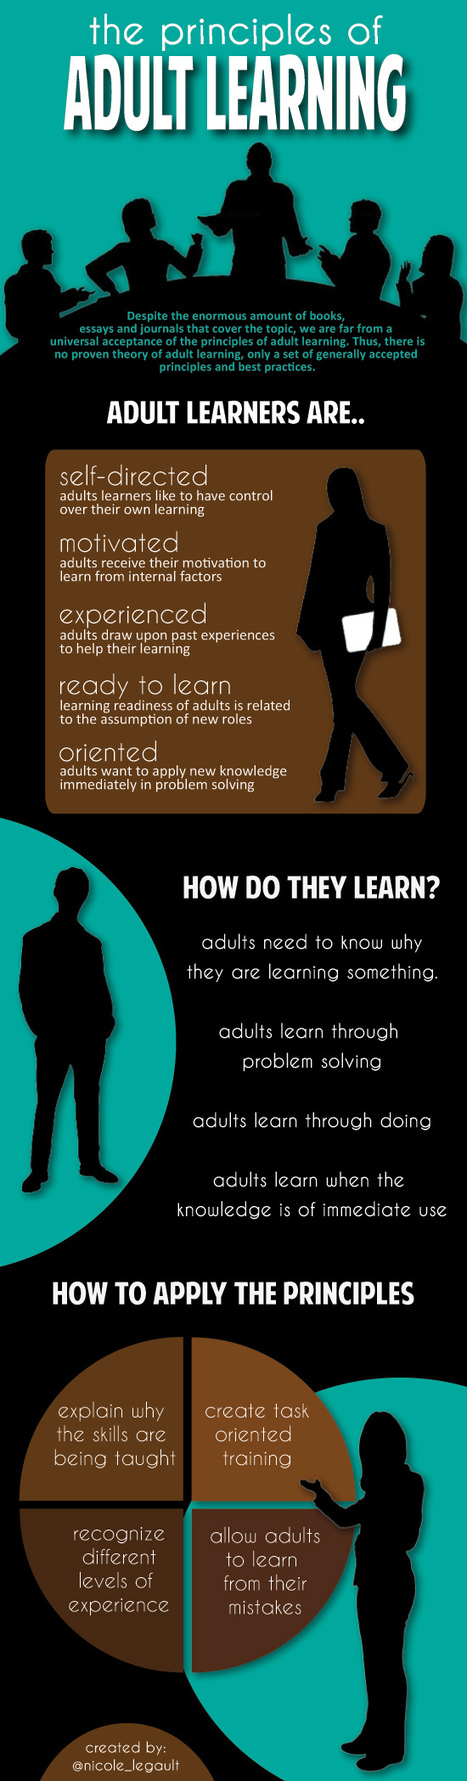 [INFOGRAPHIC] An Overview of the Principles of Adult Learning | Study skills | Scoop.it